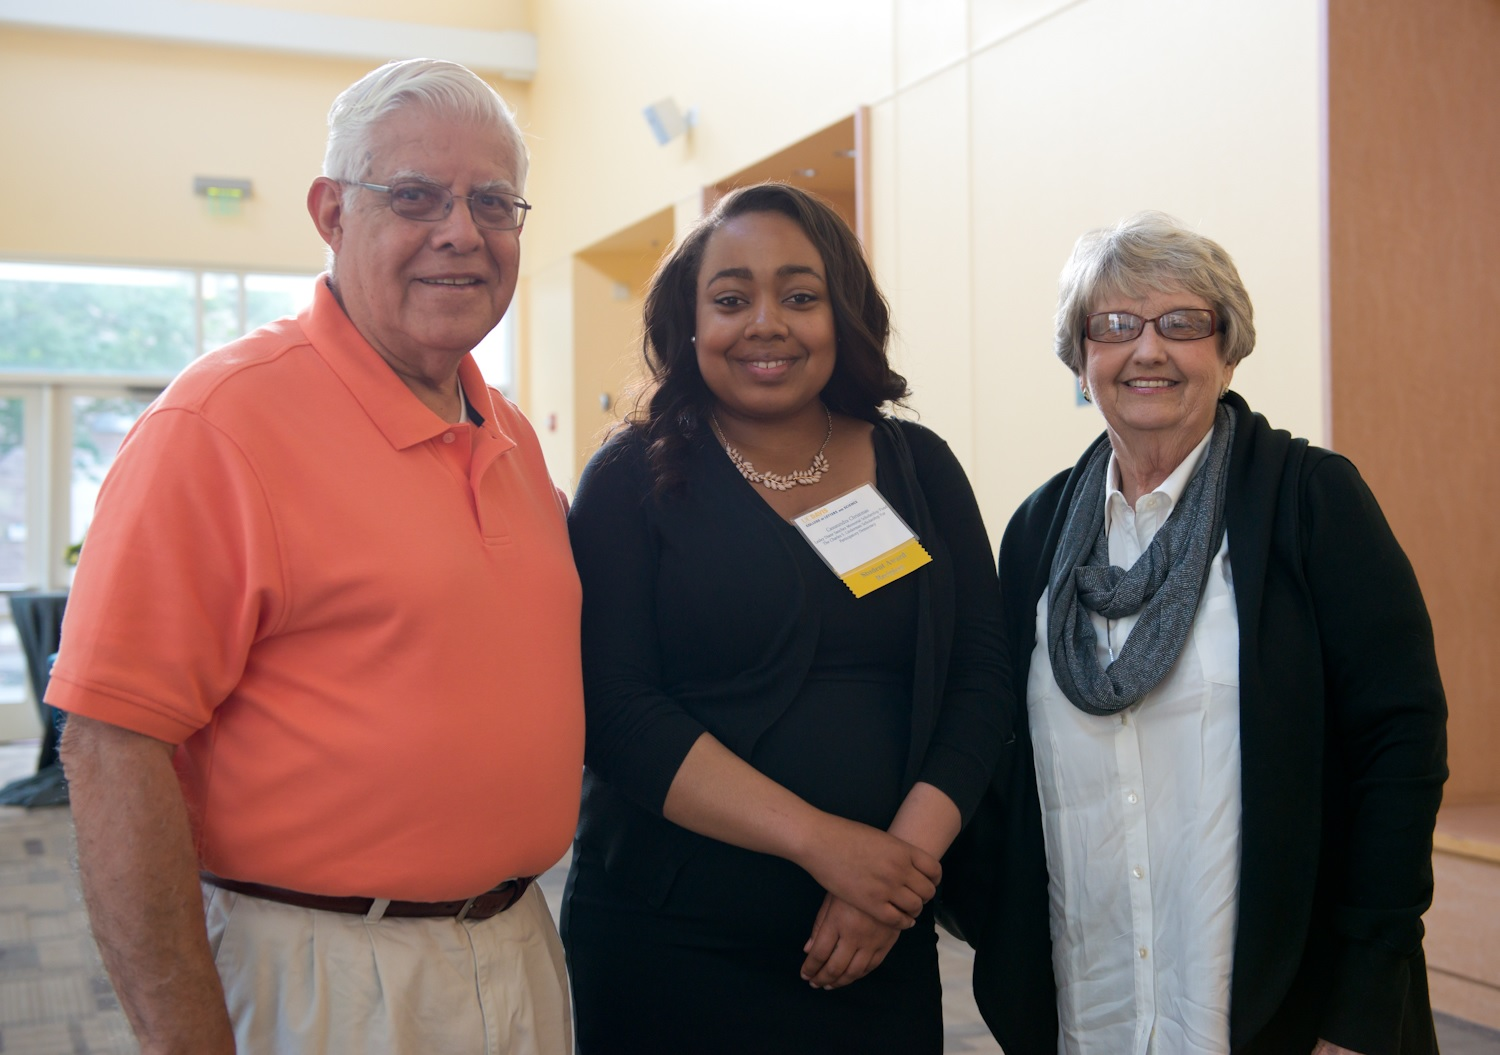 Richard and Patricia Sanchez with Cassaundra Christmas (center), recipient of the Lesley Diane Shanchez Scholarship in 2015.